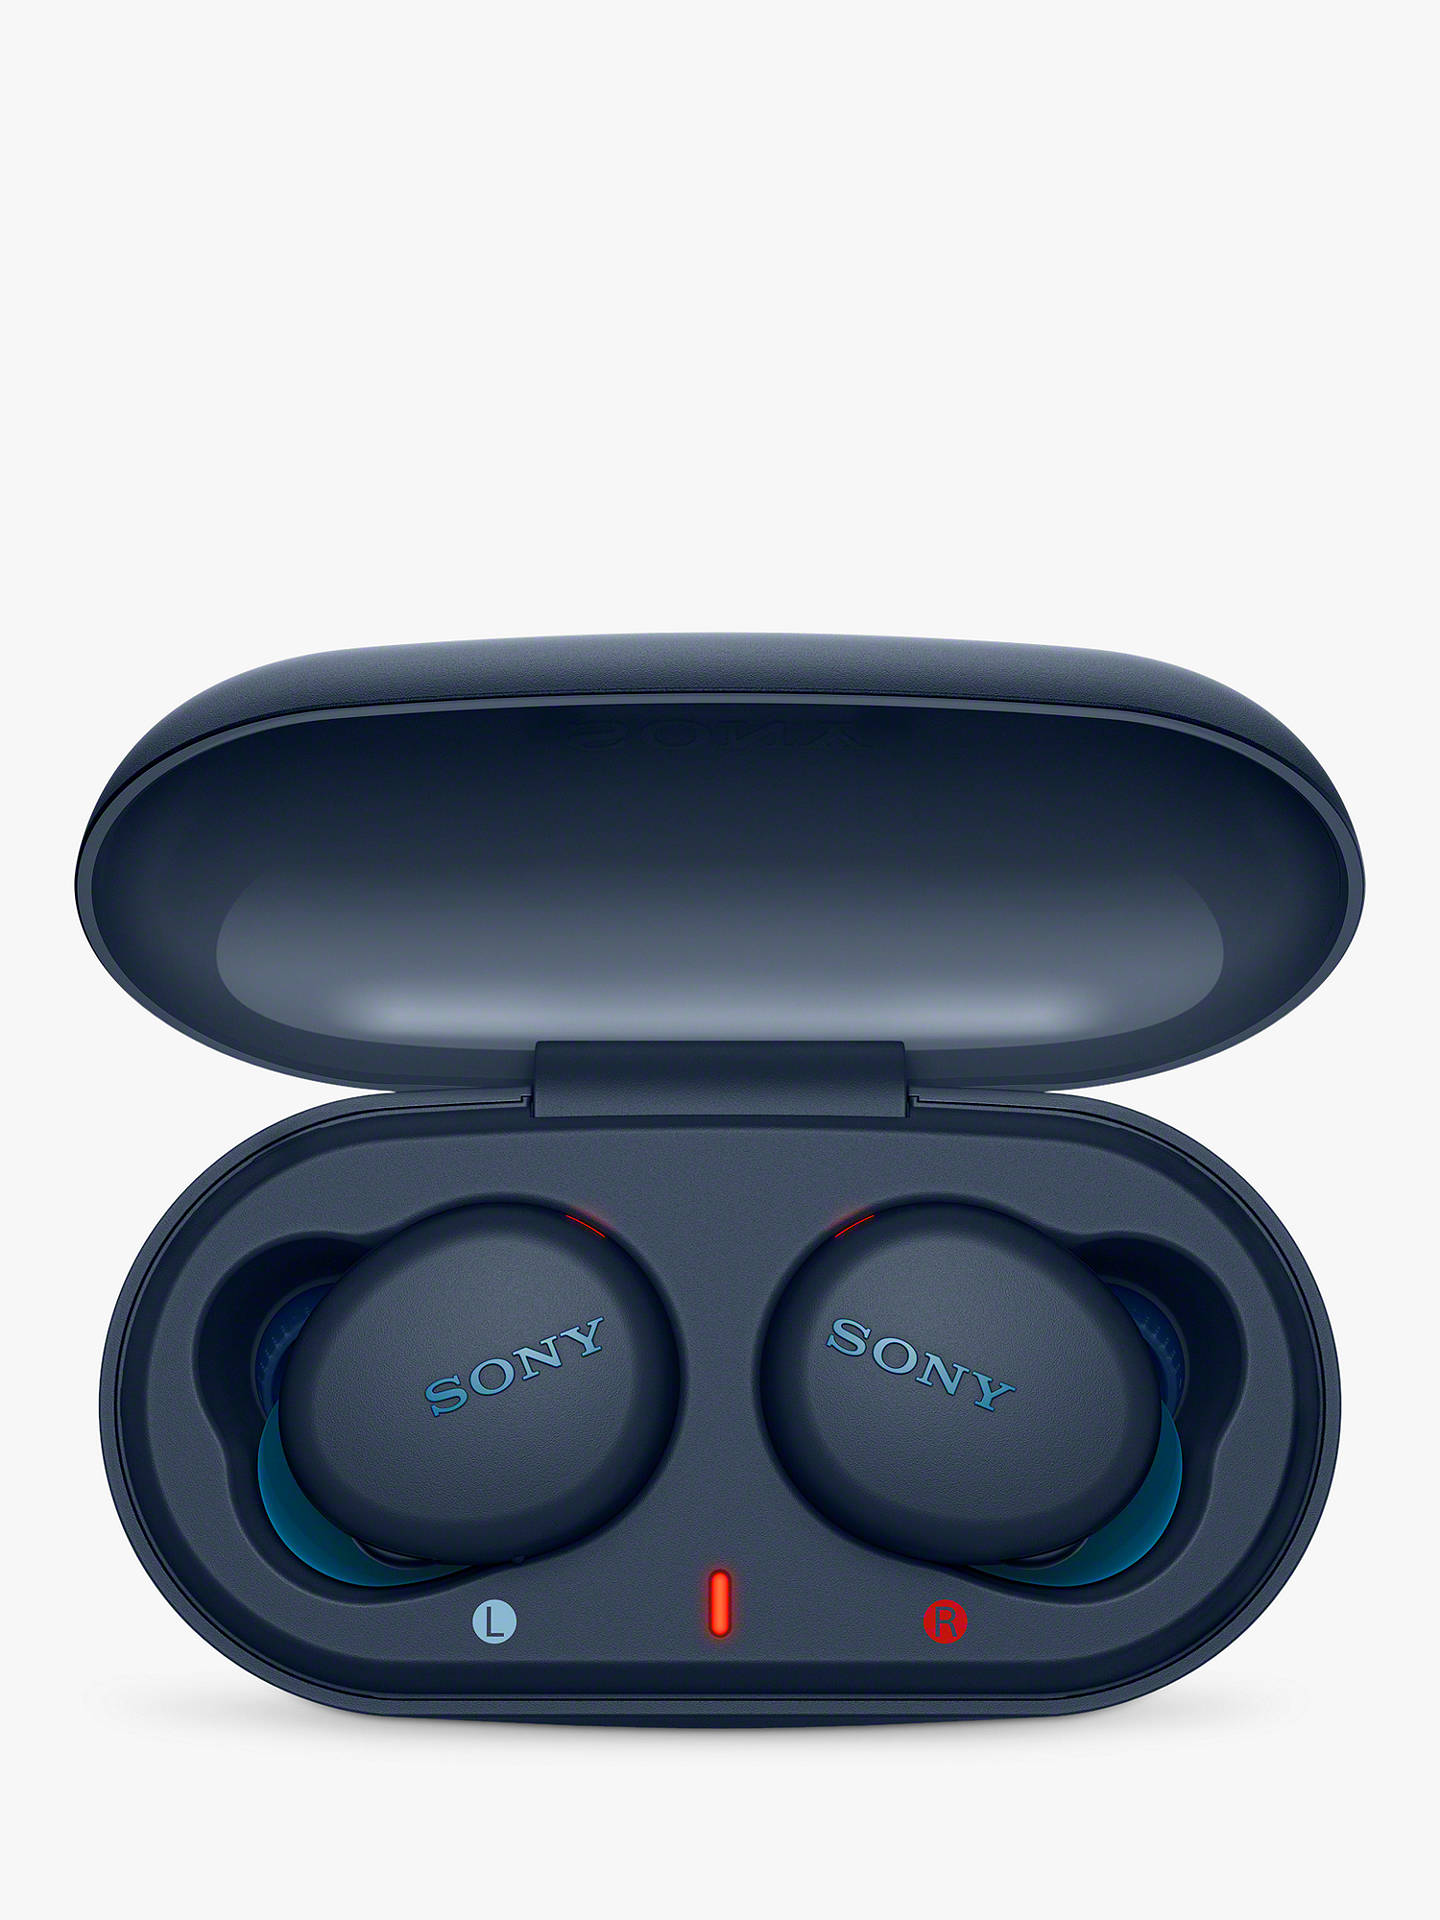 Buy Sony WF-XB700 Extra Bass True Wireless Bluetooth Splash Resistant Sports In-Ear Headphones with Mic/Remote, Blue Online at johnlewis.com